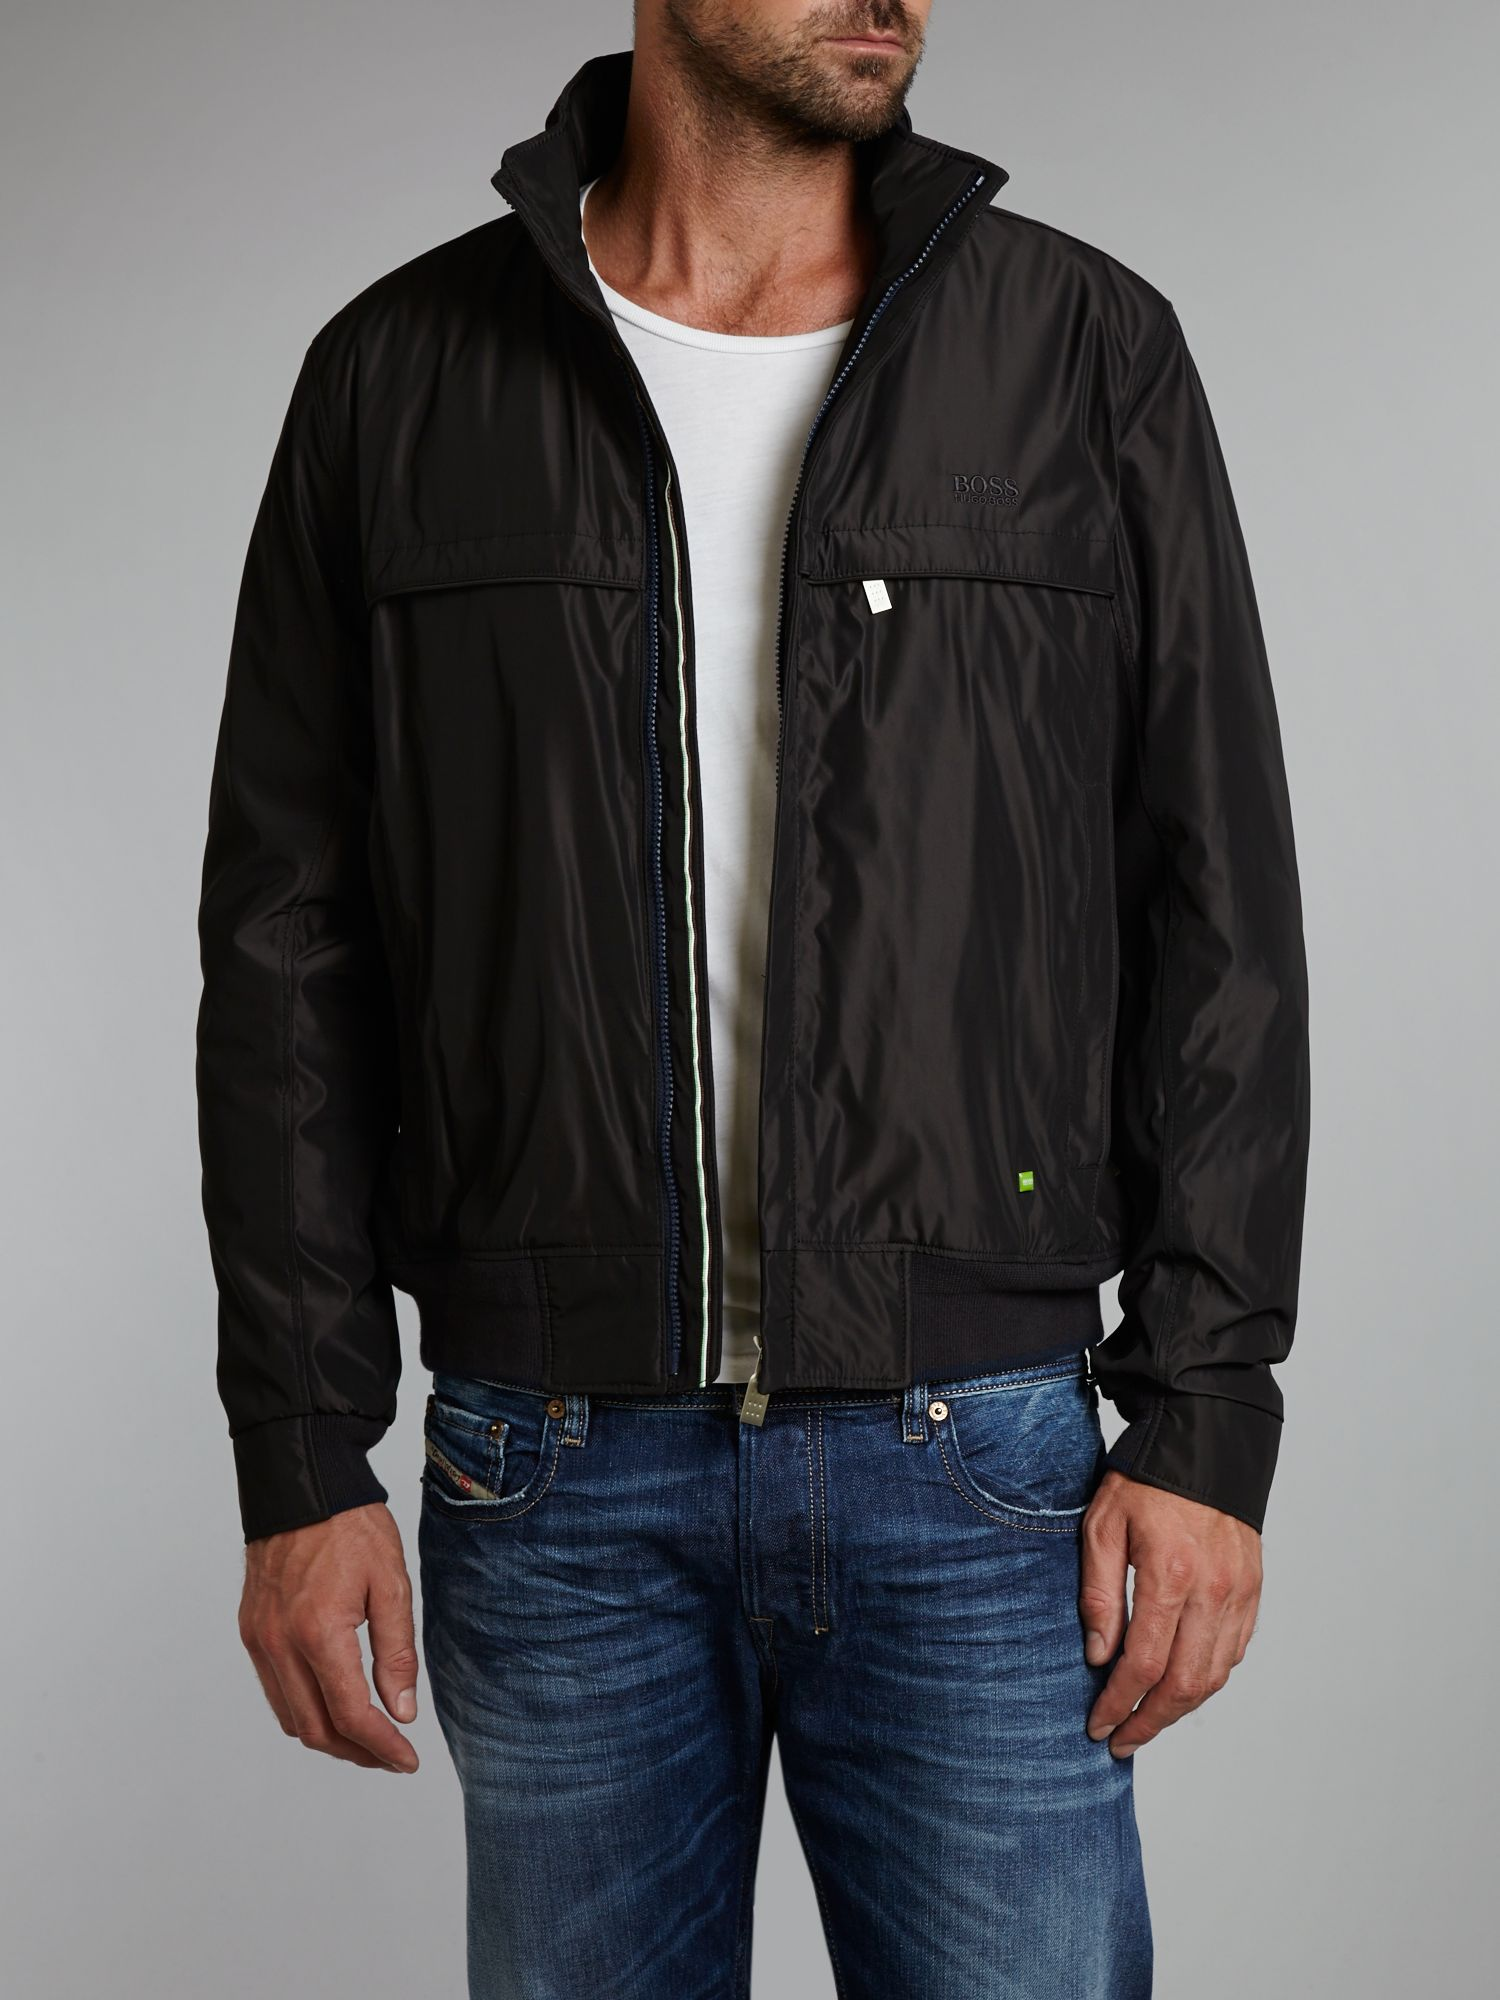 Light weight two tone bomber jacket